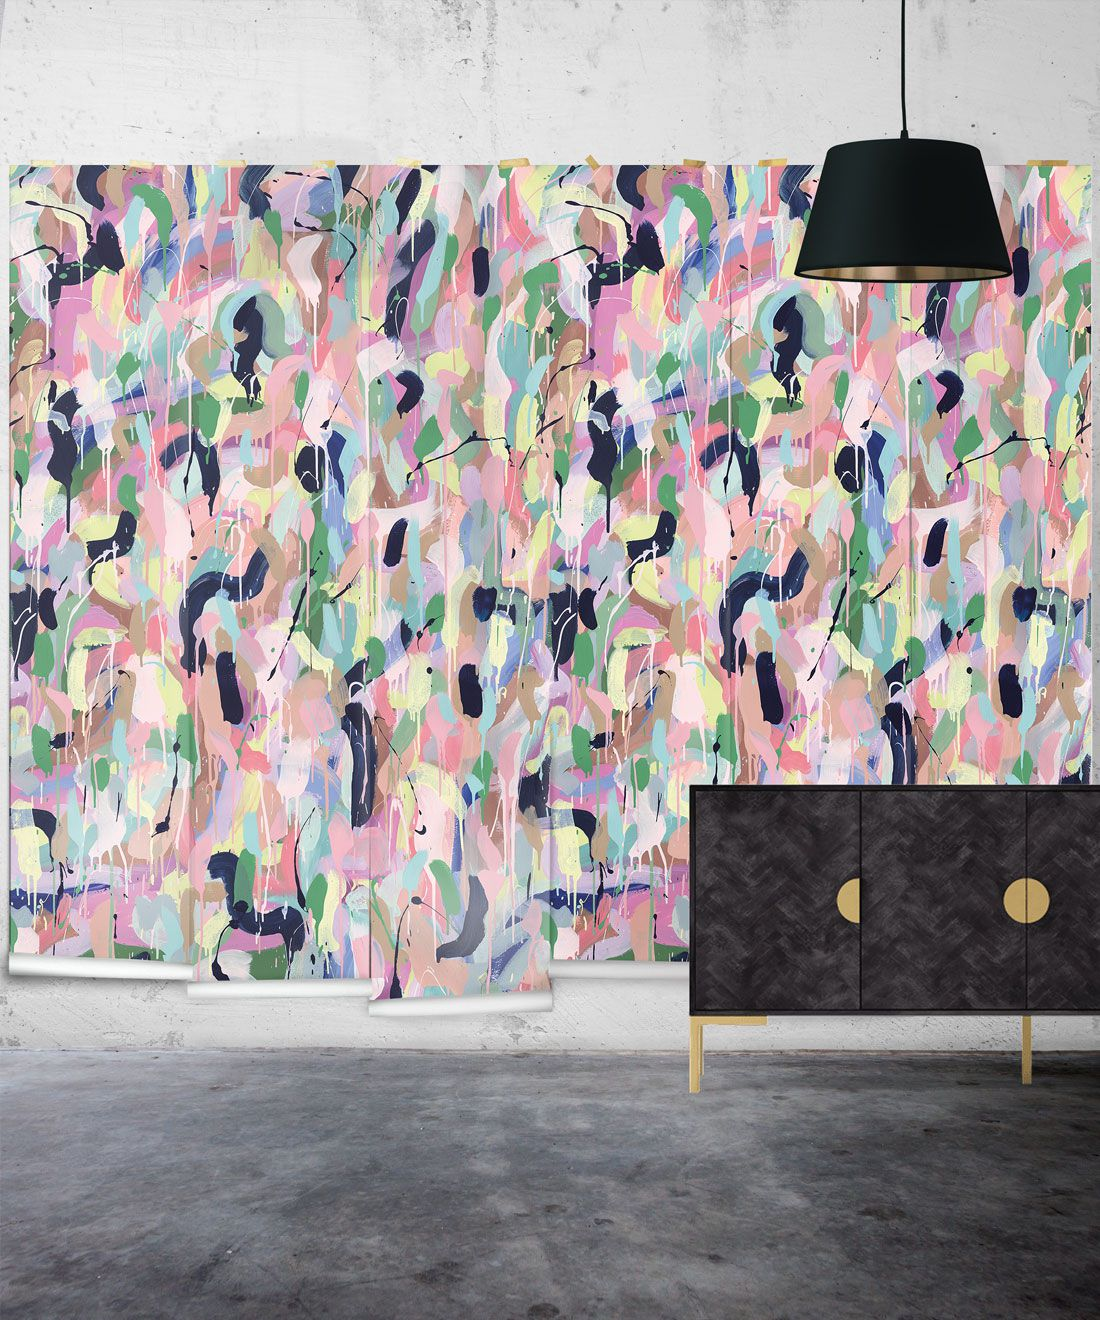 Between Tides Wallpaper •Colorful Painterly Wallpaper • Tiff Manuell • Abstract Expressionist Wallpaper • Insitu